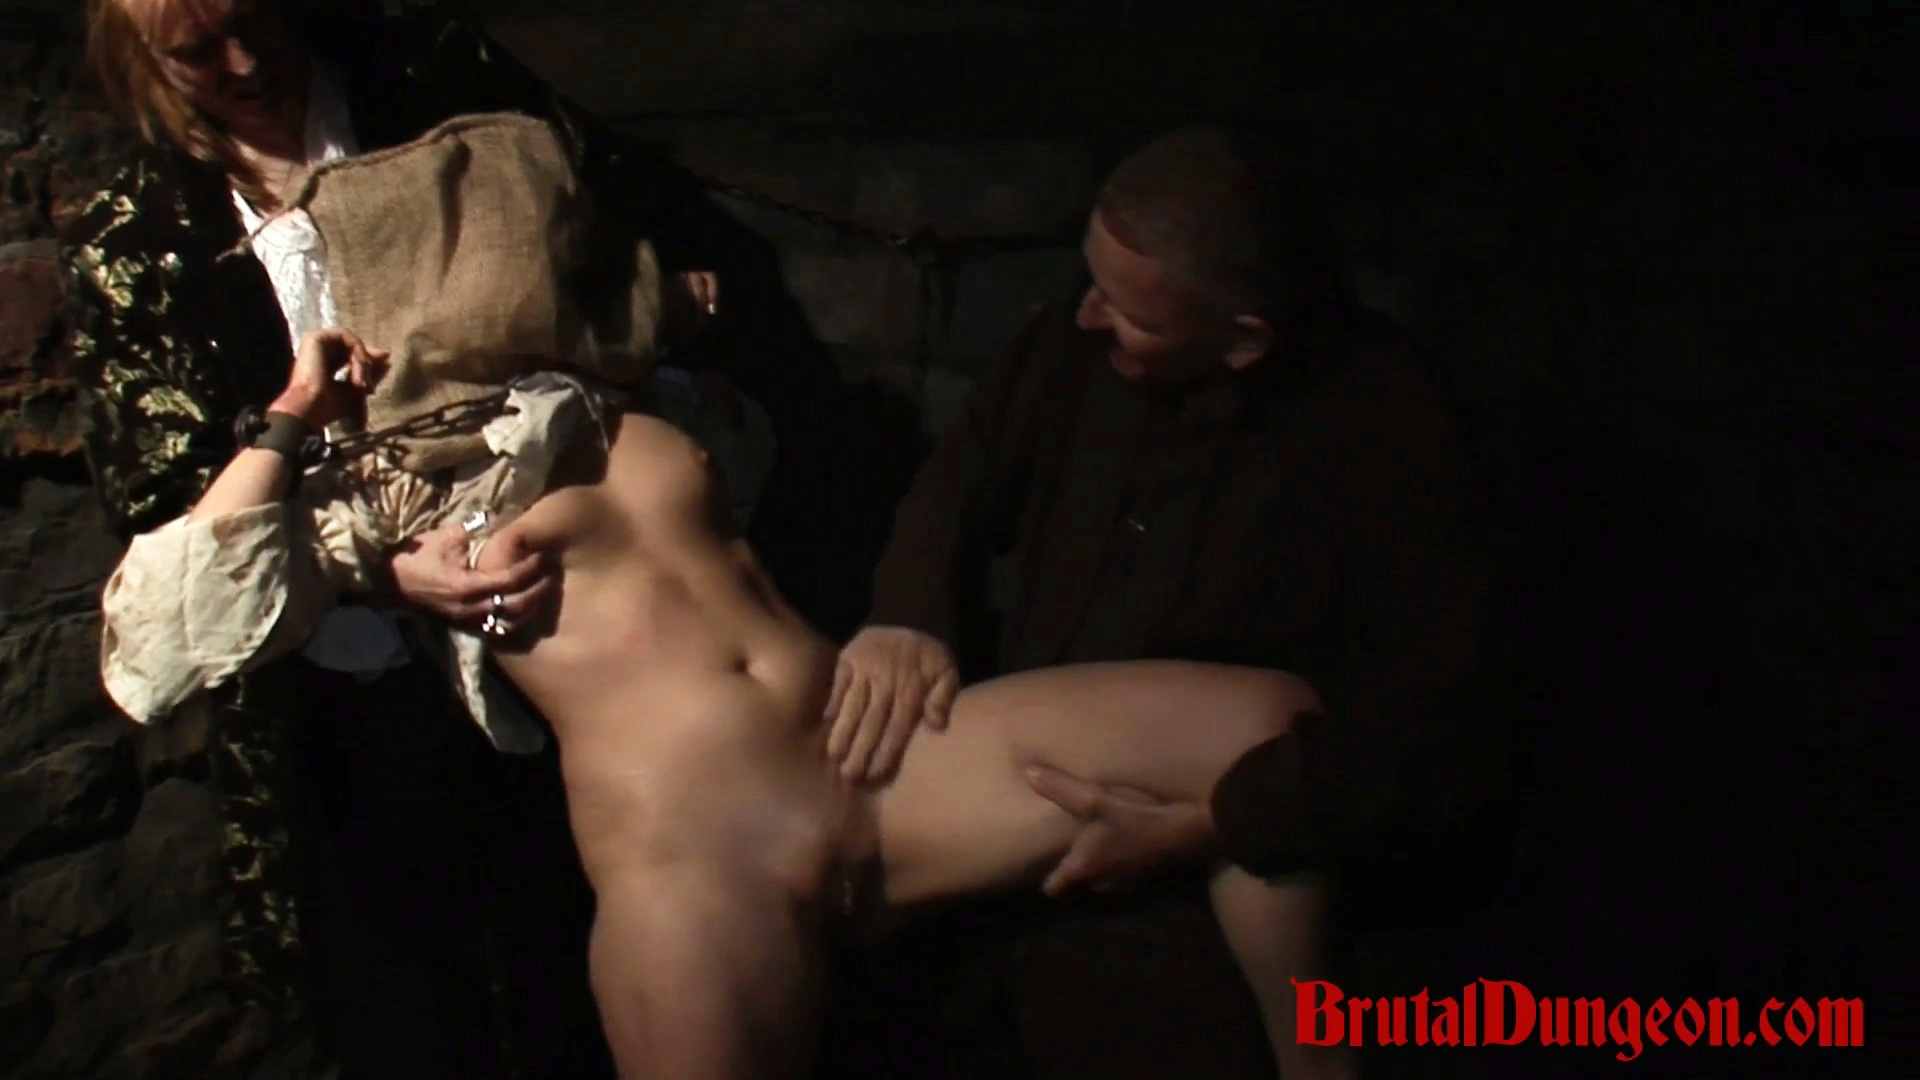 Blonde amalia is imprisoned for bdsm gang bang  in our dungeon a young blonde wench is left without any water  for a few drops of water she would do anything even she will have to stand any kind of mistreatment to satisfy her thirst  she must endure impri. In our dungeon, a young blonde wench is left without any water. For a few drops of water she would do anything, even she will have to stand any kind of mistreatment to satisfy her thirst. She must endure imprisonment, bondage, domination, BDSM fun, gang bang, blindfold, spanking, fingering, tit and cunt torment.